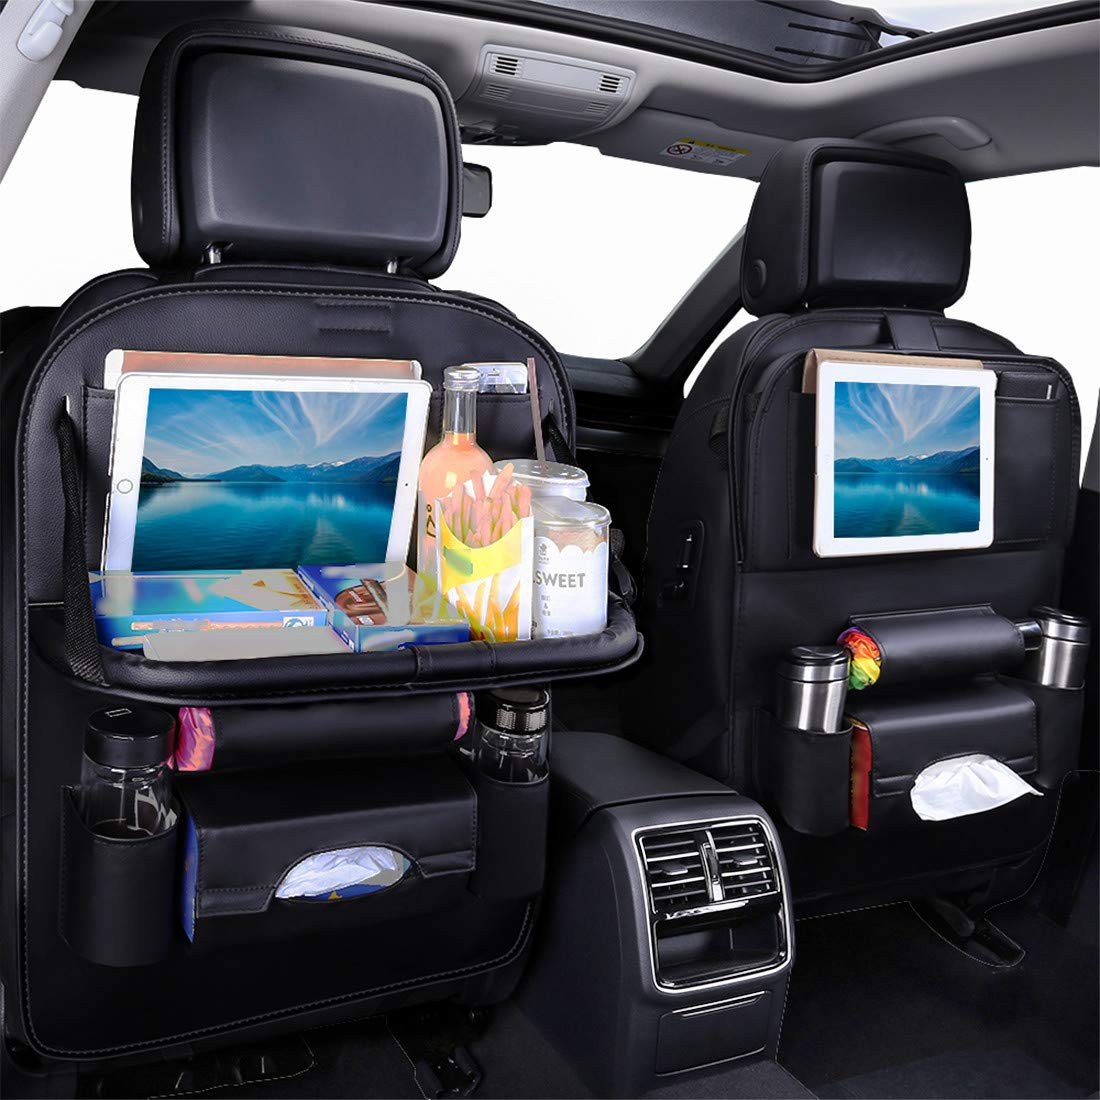 Jiadi Si Car Seat Protector Backseat Organizer Foldable Dining Table with iPad and Tablet Holder Black Table Tray Travel Accessories Organizer